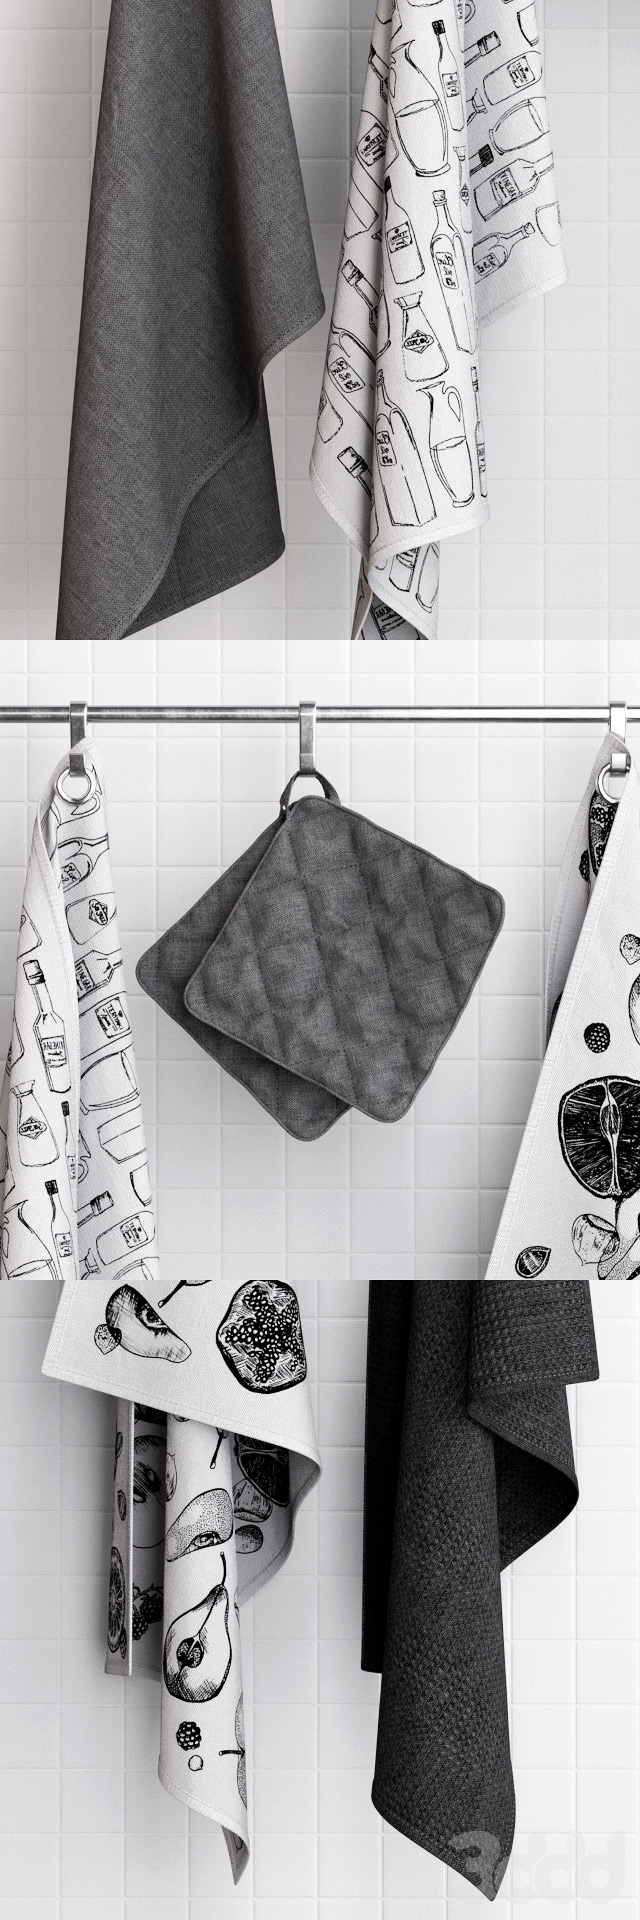 Zara Grey Towels on Hooks